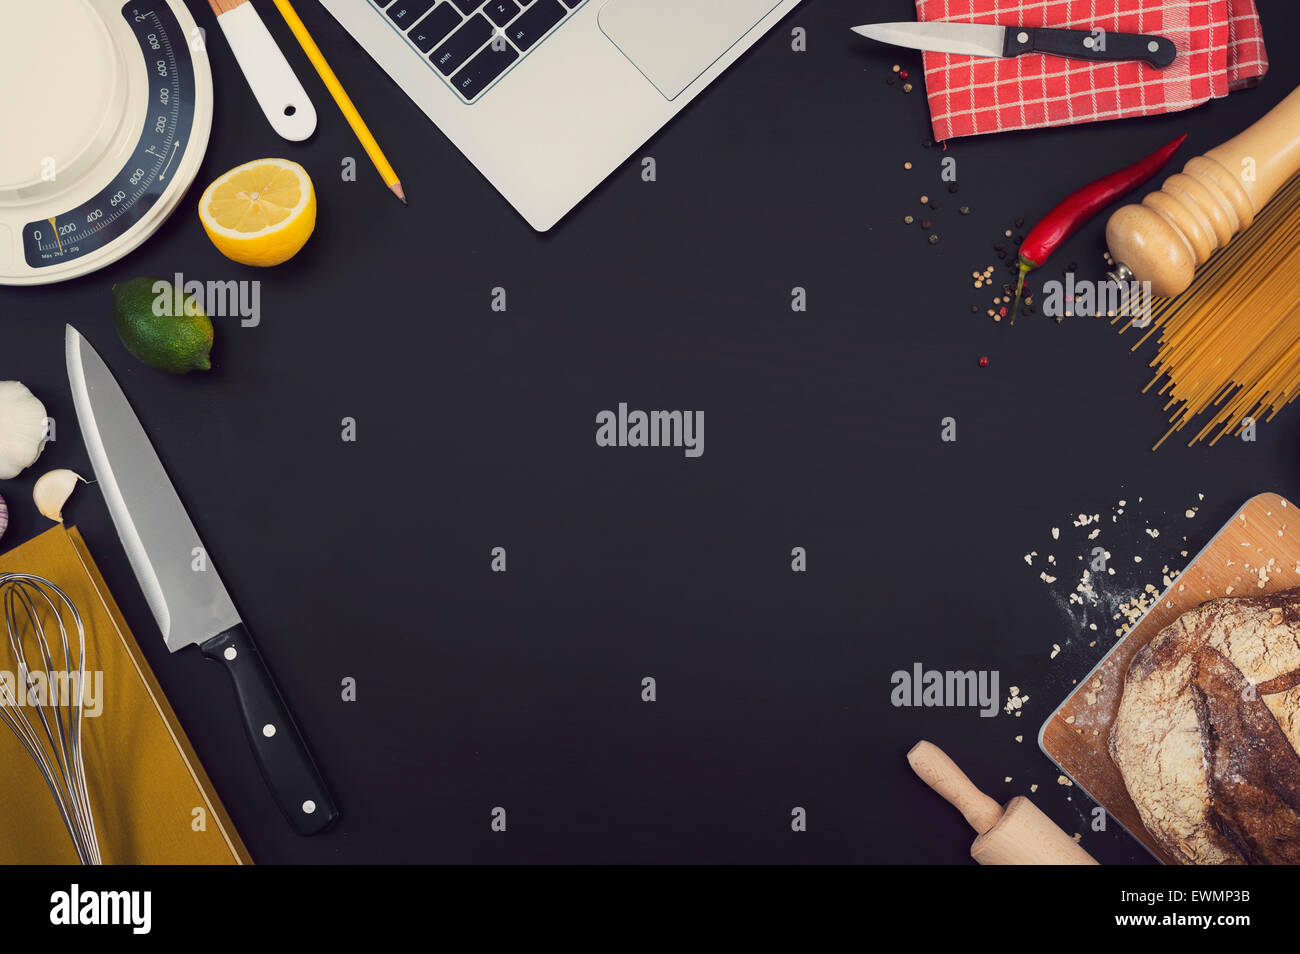 Hero Header image for website background with copy space - Stock Image